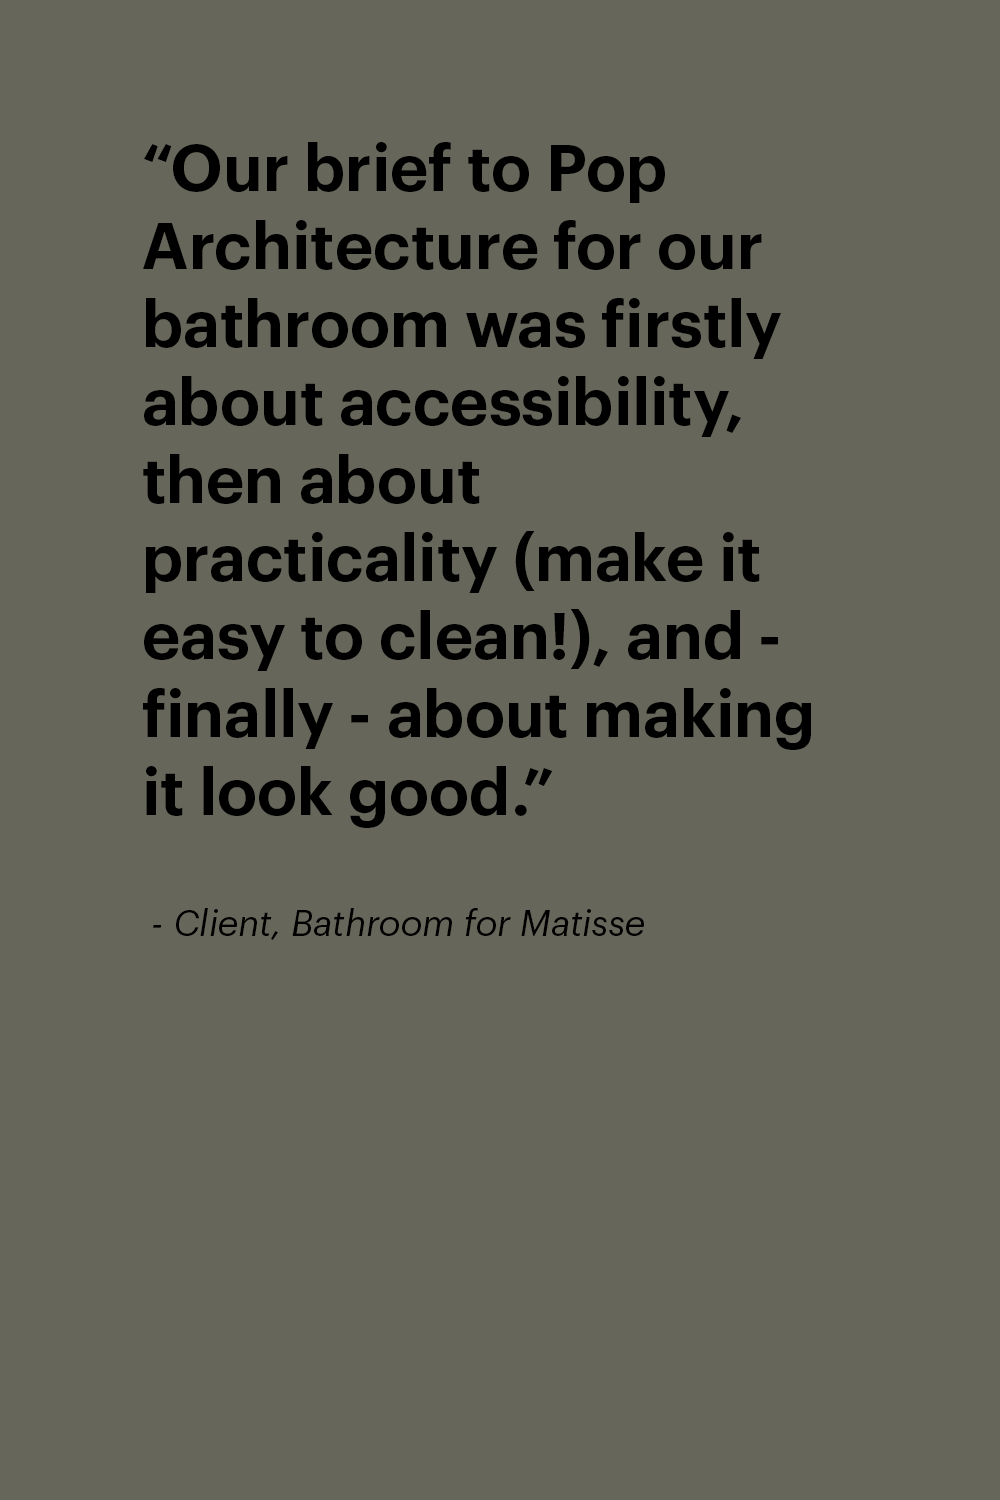 Quote matisse_I.png